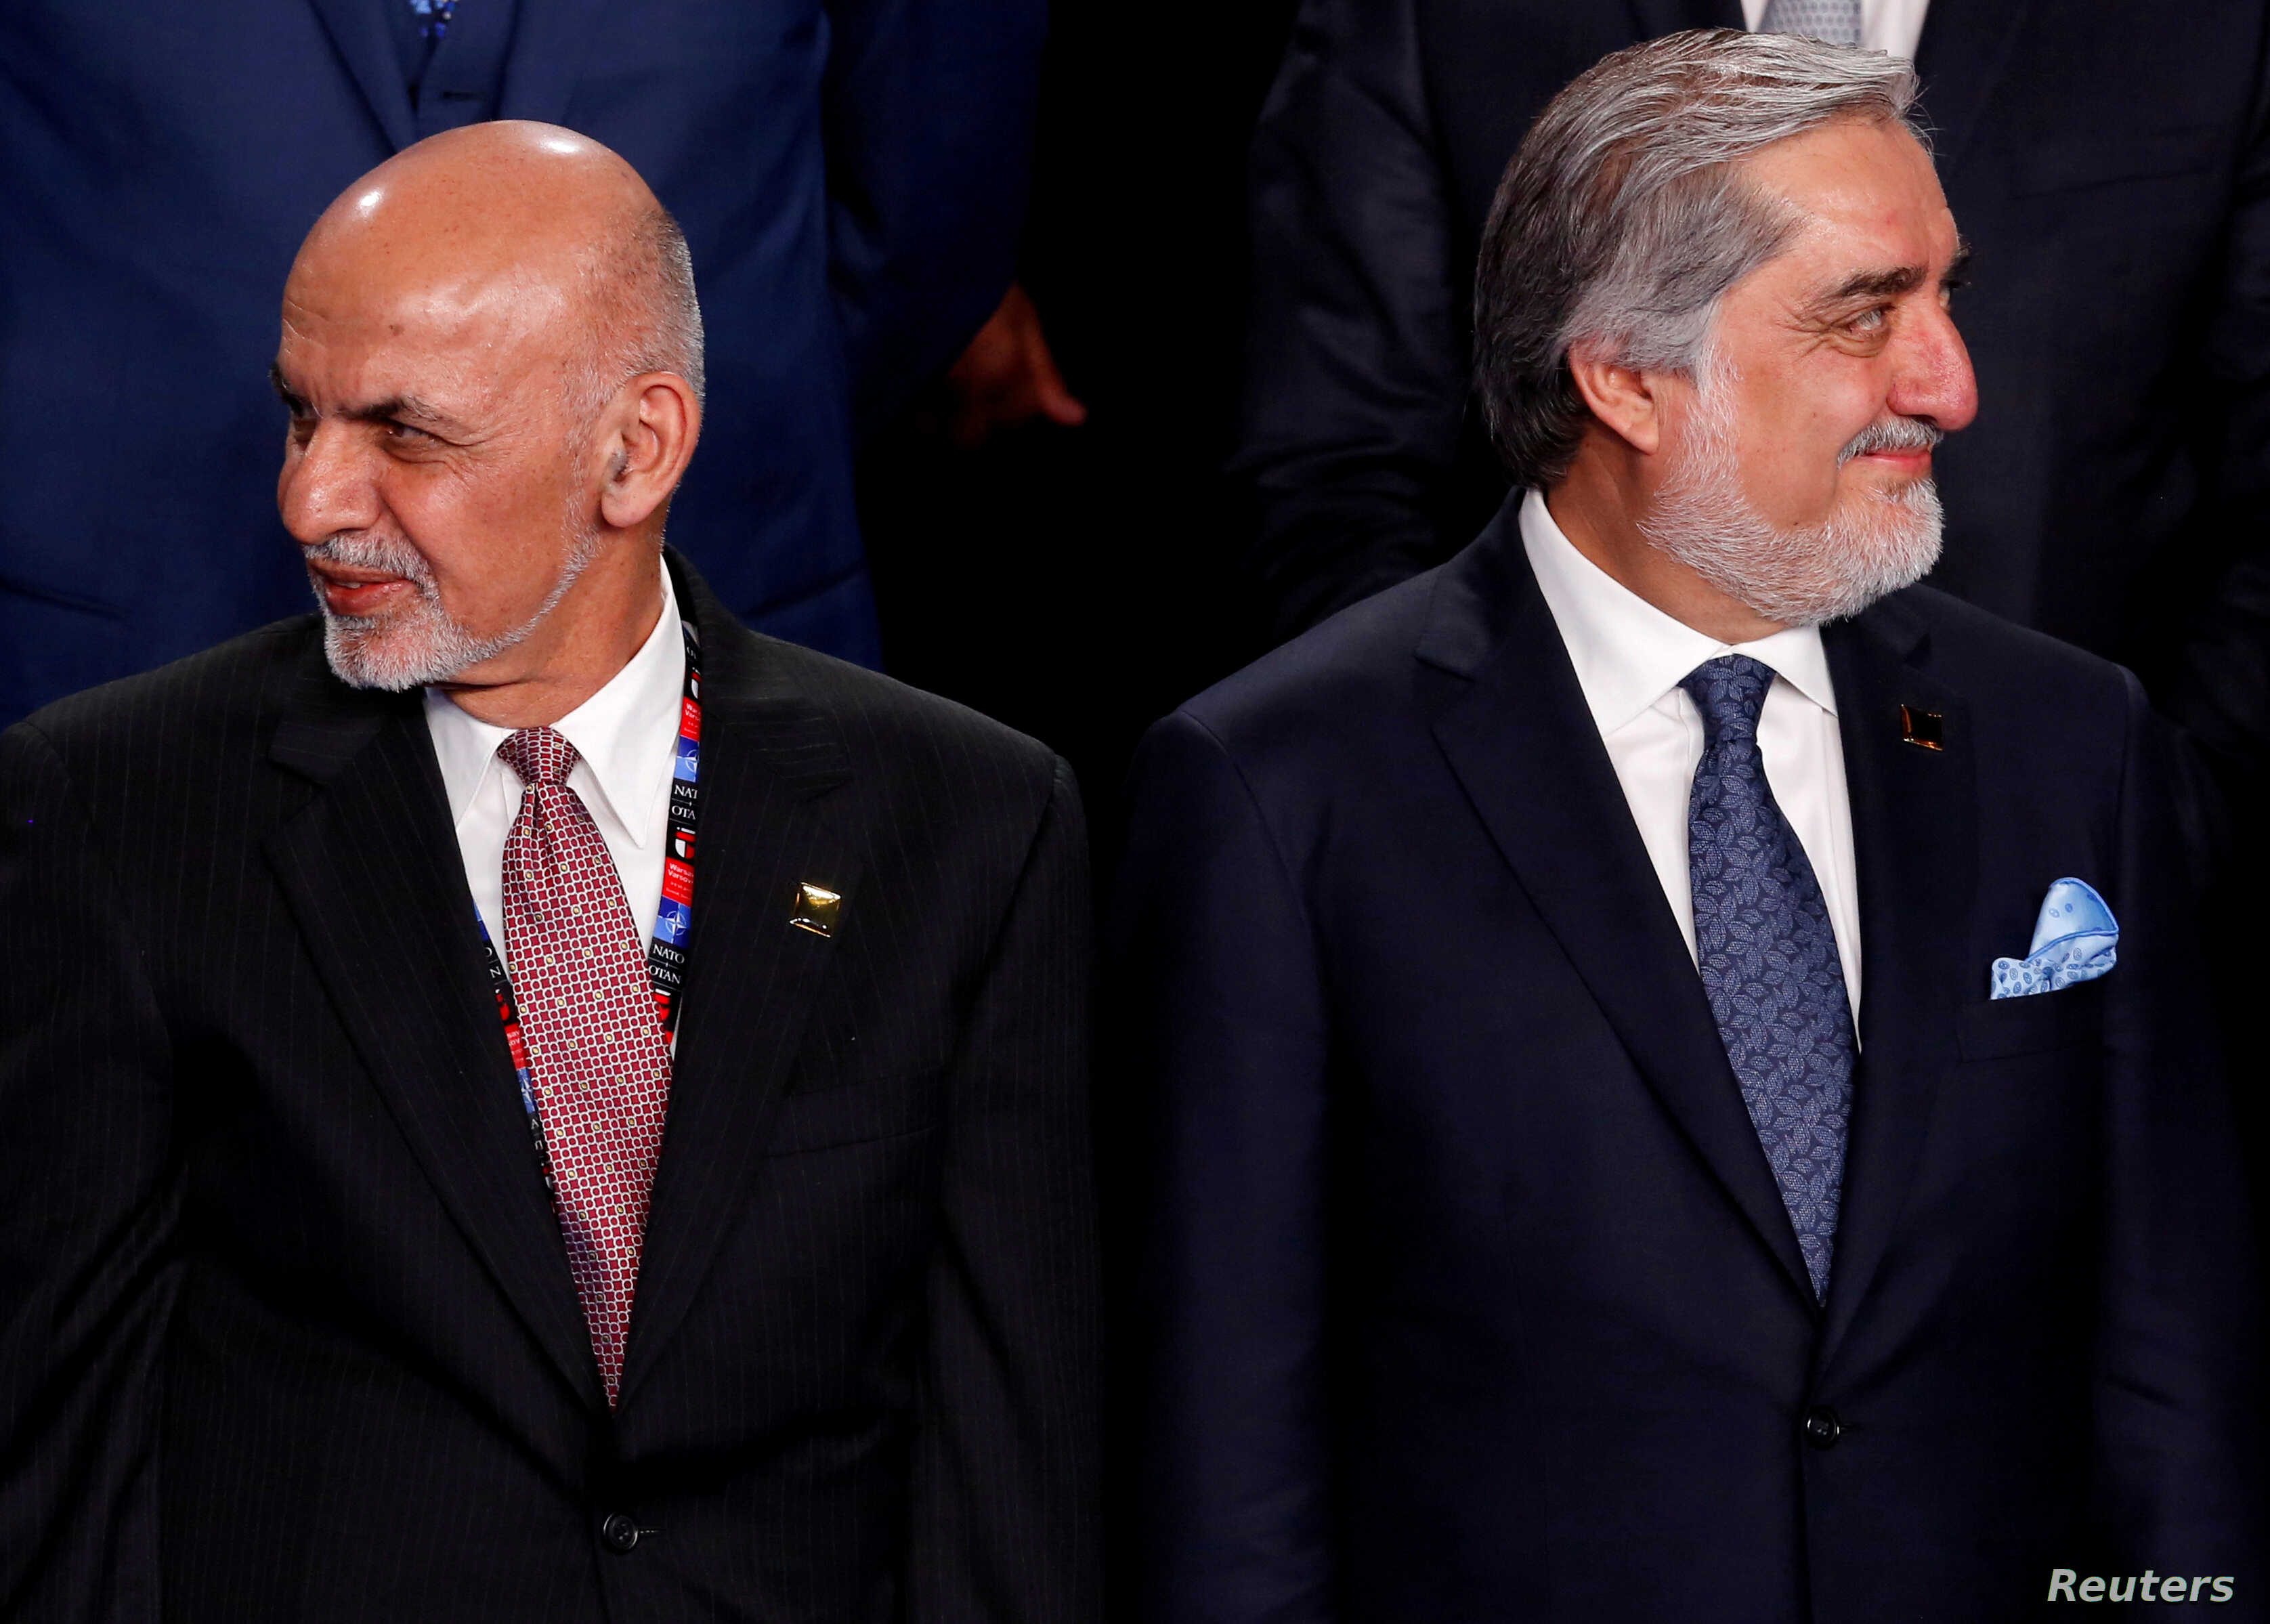 Afghan peace deal: US warns of responses if Taliban violence continues